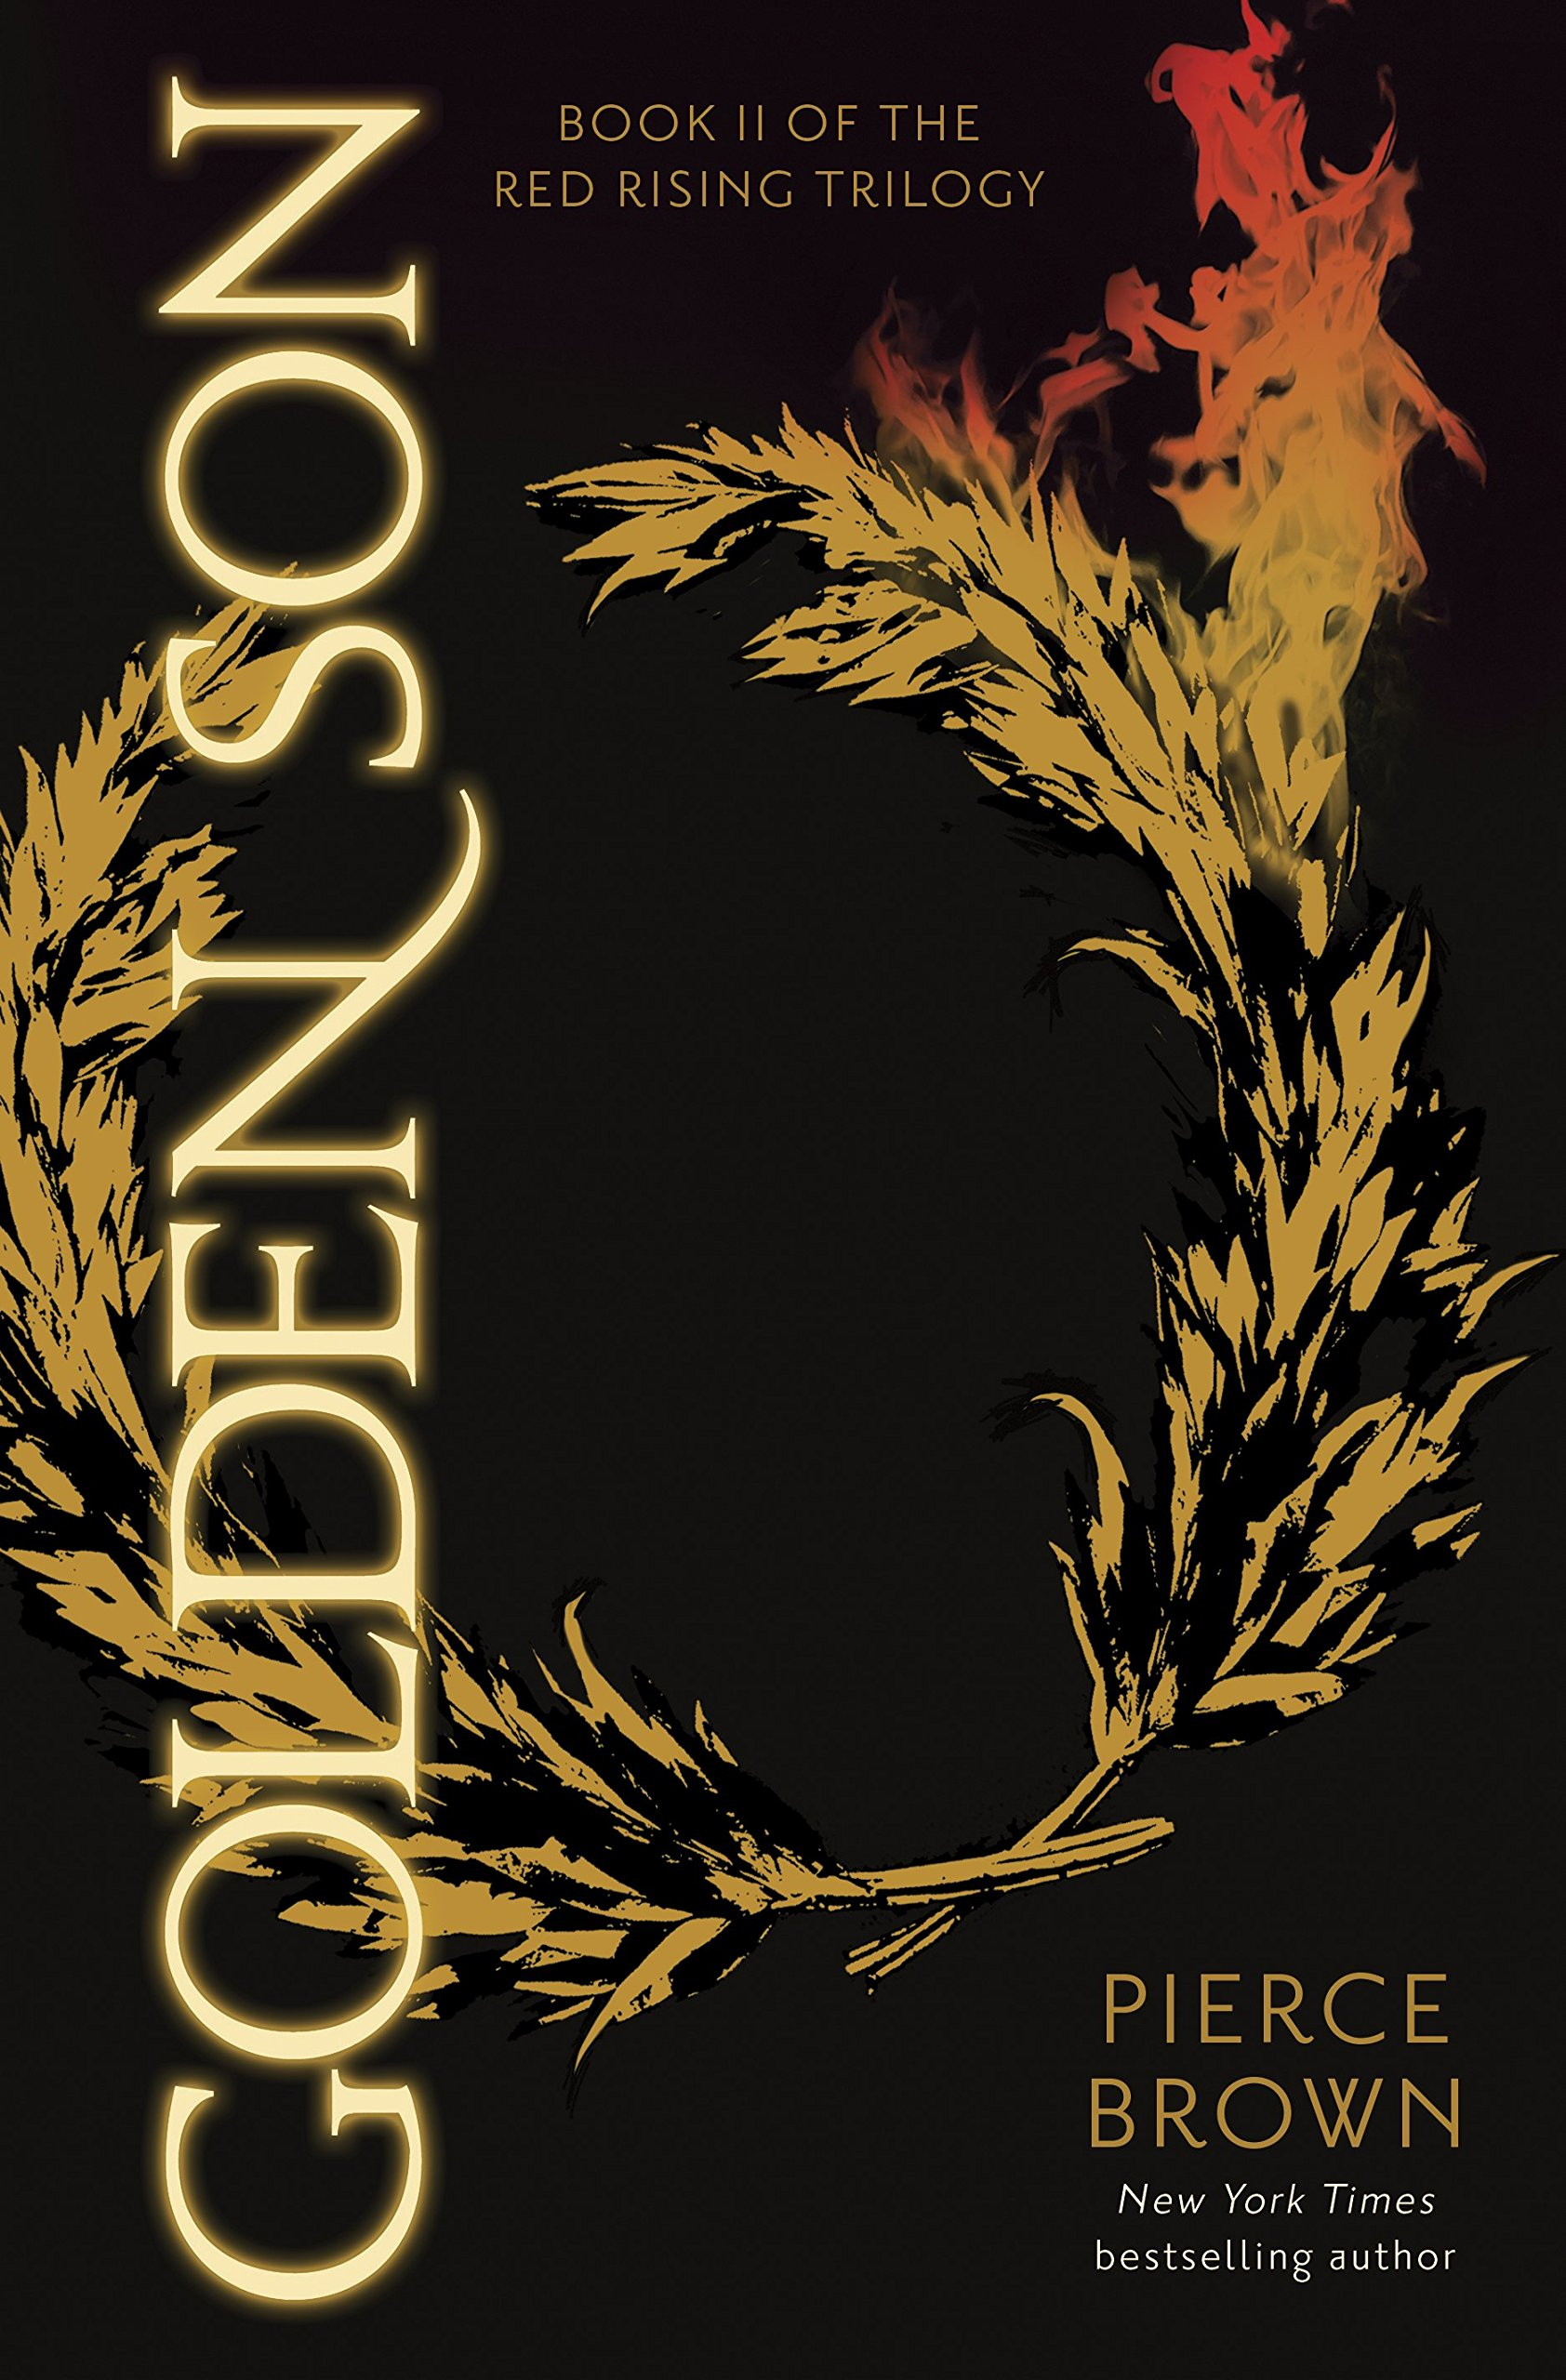 Golden Son ISBN-13 9780345539816